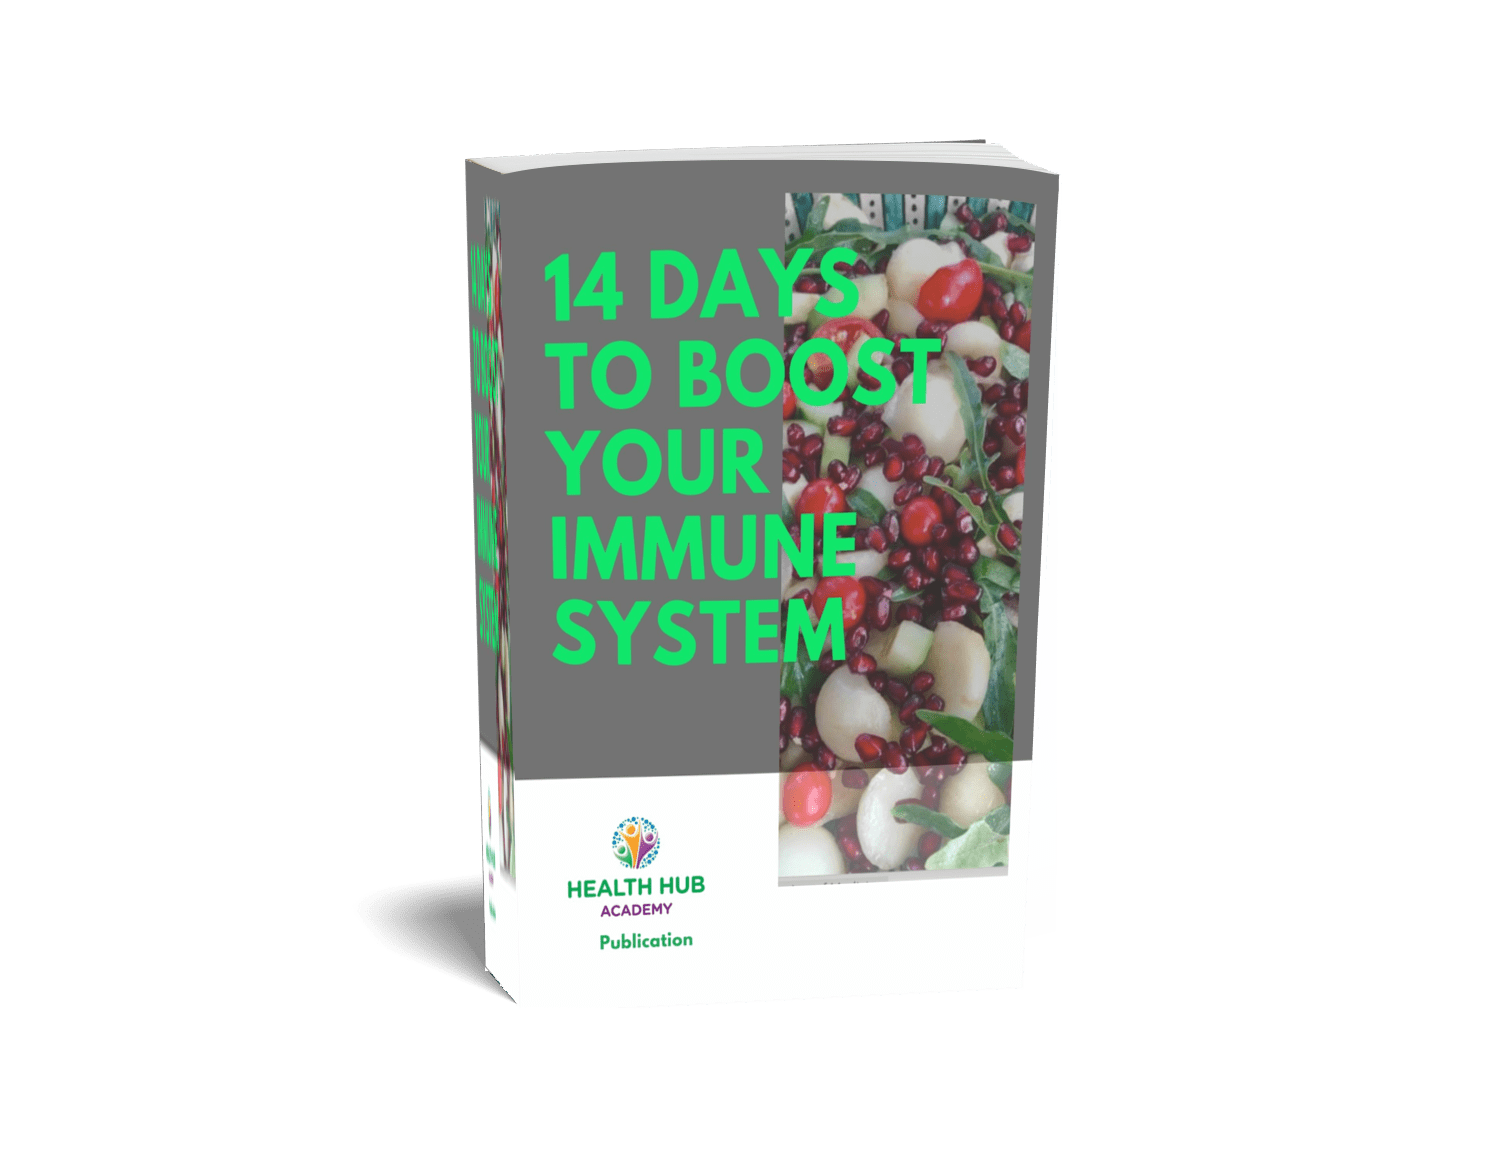 14 Day Immune System - Free Lead Magnet Cover